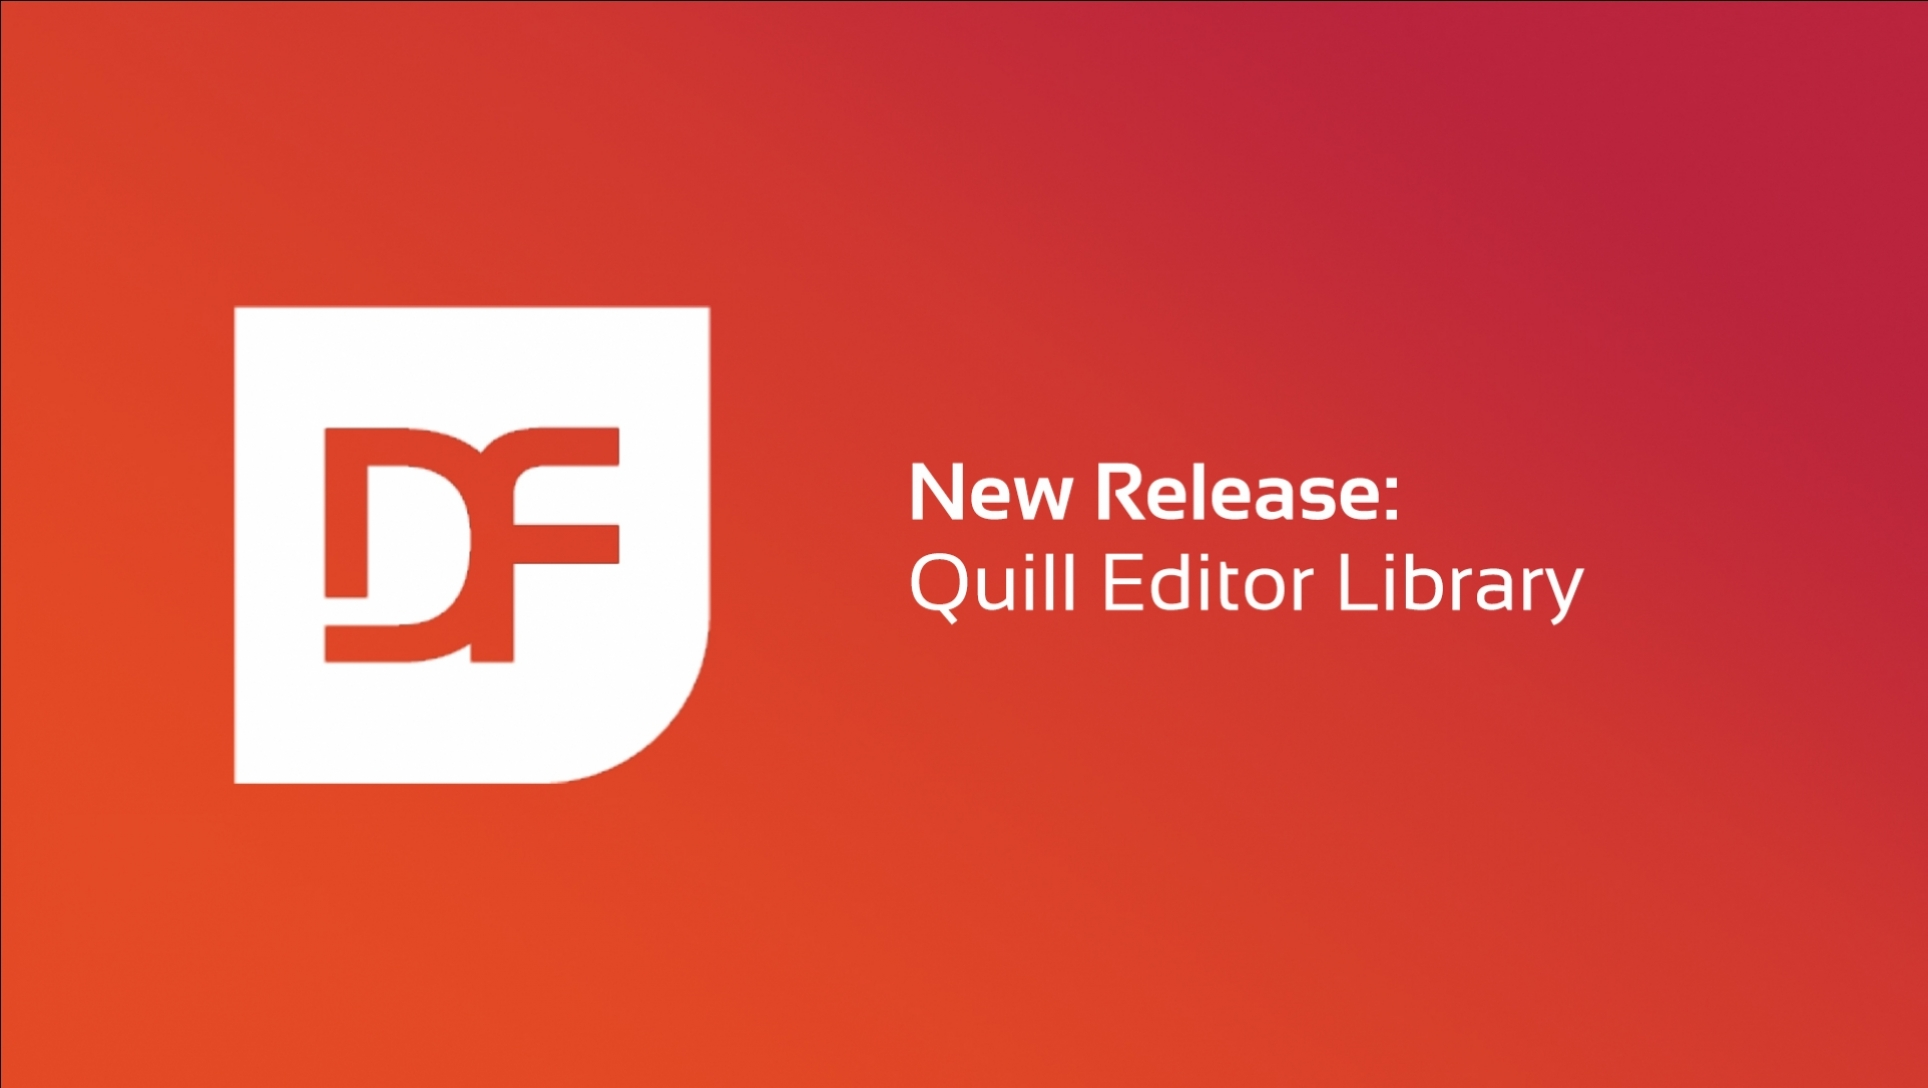 New Release: DataFlex Library for Quill Editor